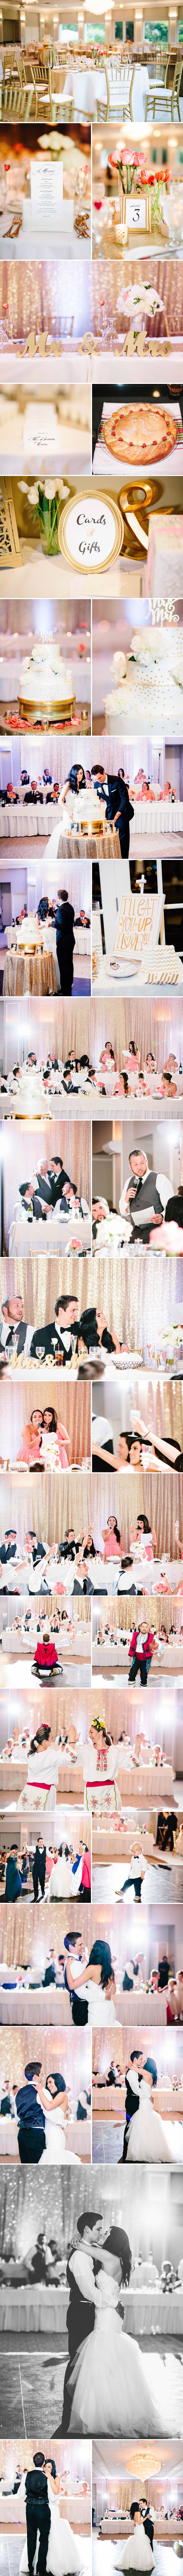 chicago-fine-art-wedding-photography-keele1